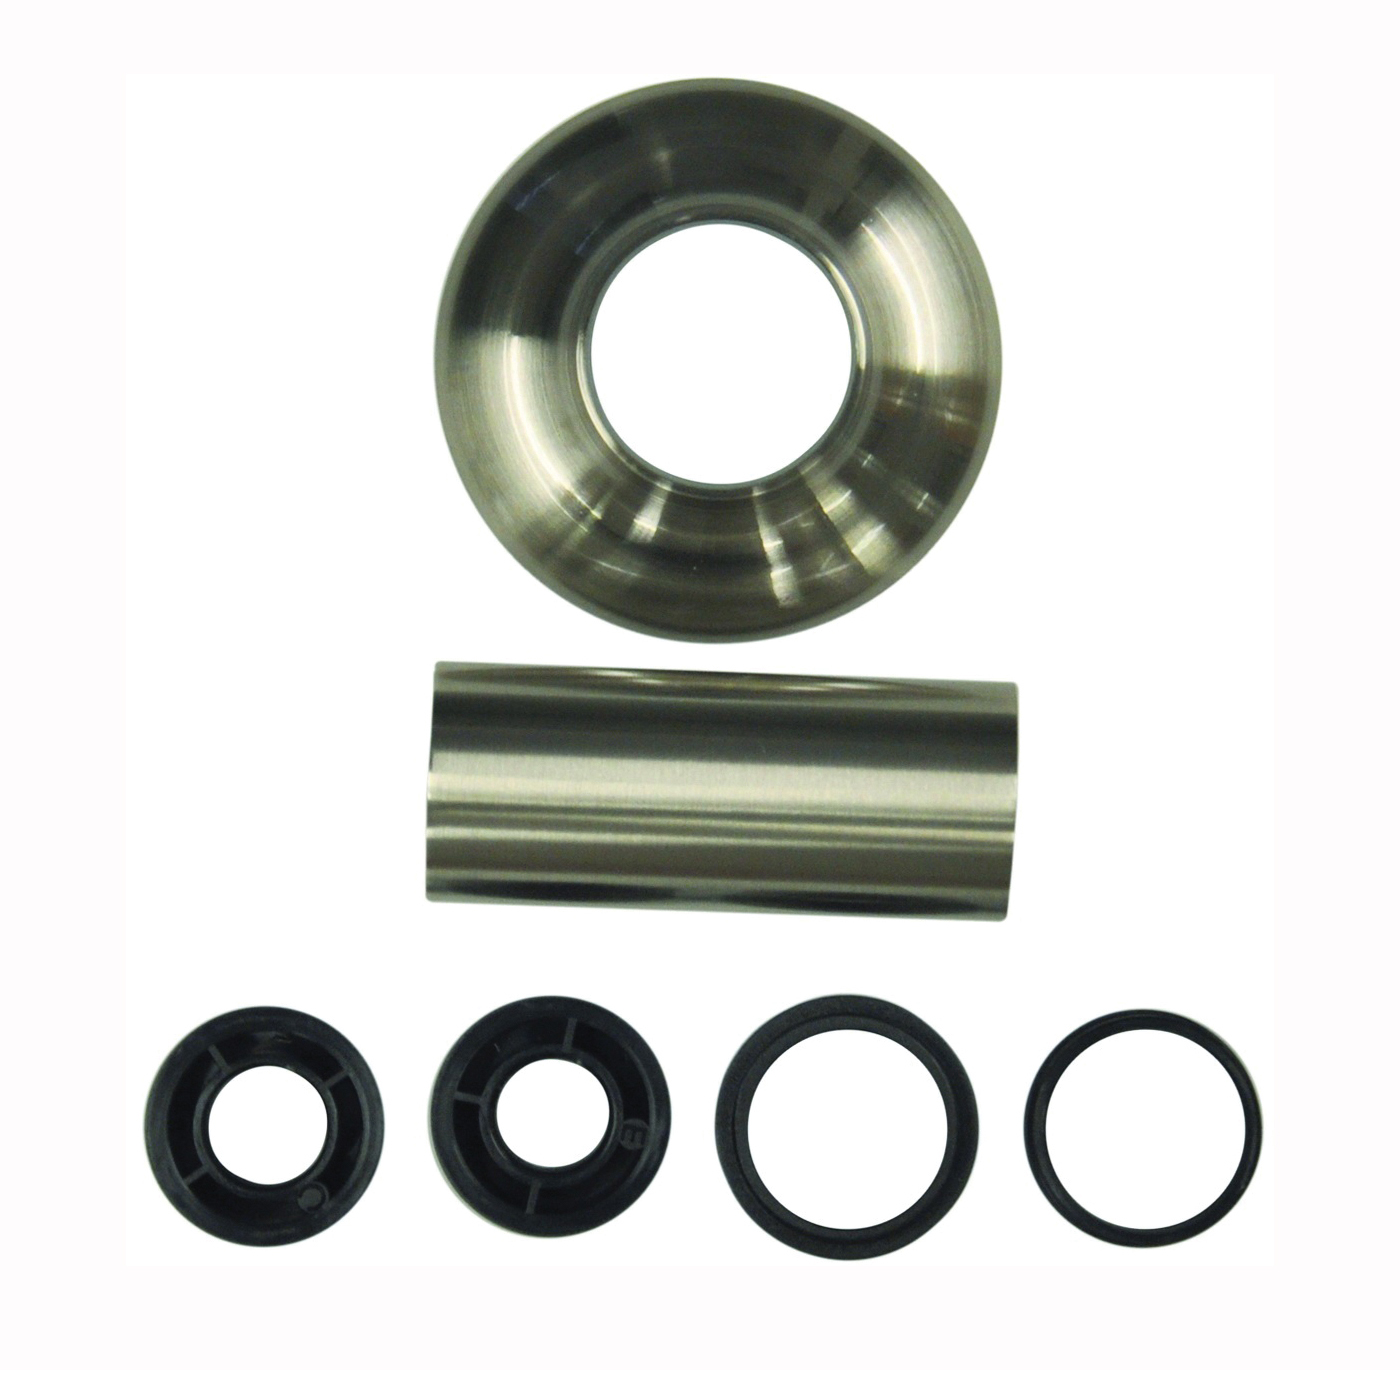 Picture of Danco 10308 Flange Set, 1-1/16 to 9/16 in Adapter, 1-1/2 in Flange ID, 3 in Flange, 1-1/2 in Tube OD, Brushed Nickel